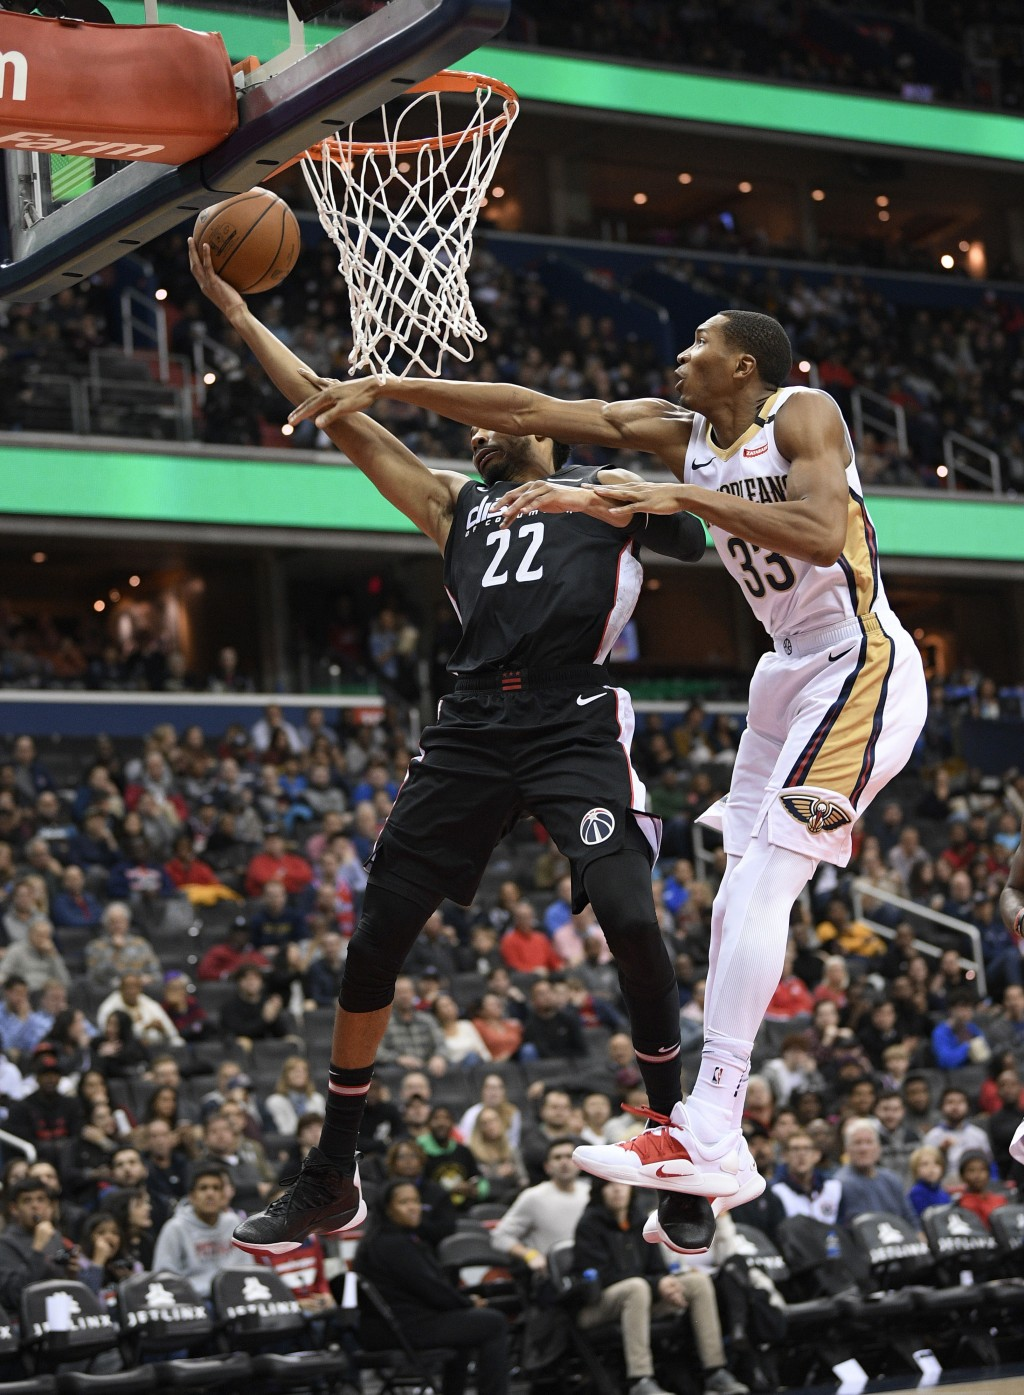 Washington Wizards forward Otto Porter Jr. (22) is fouled by New Orleans Pelicans forward Wesley Johnson (33) during the second half of an NBA basketb